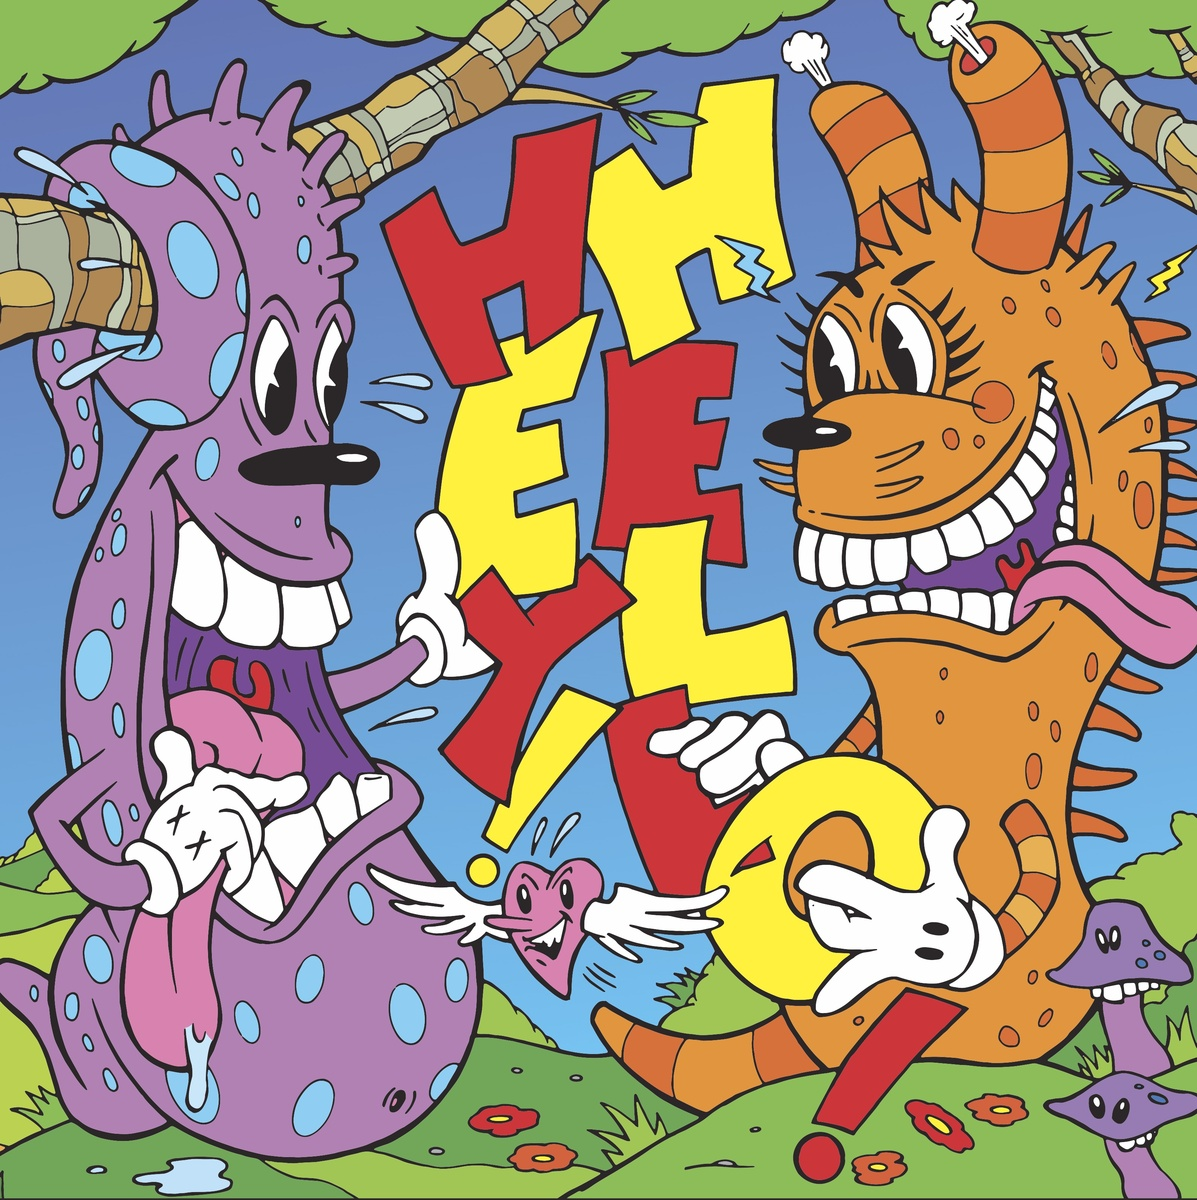 CD Review: Hey! Hello! by Hey! Hello!